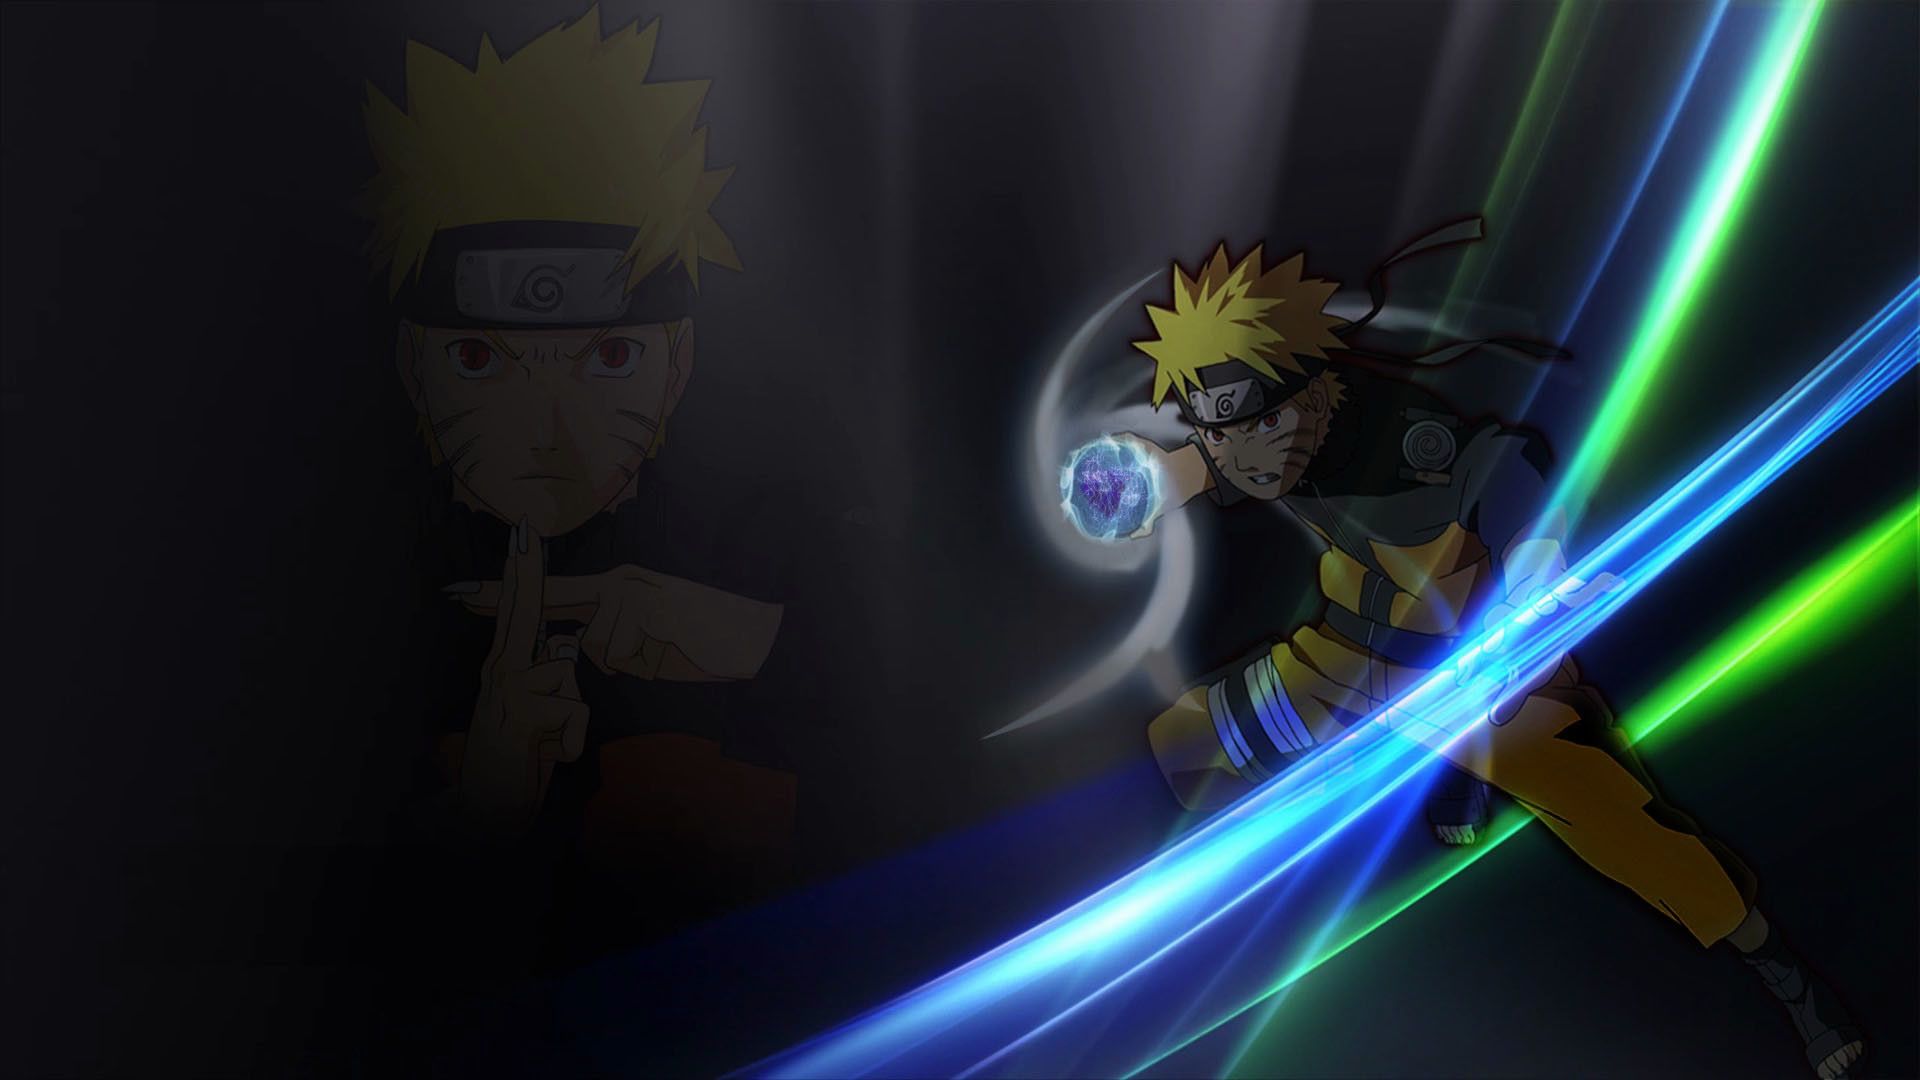 Naruto Live Wallpaper for PC 55+ images